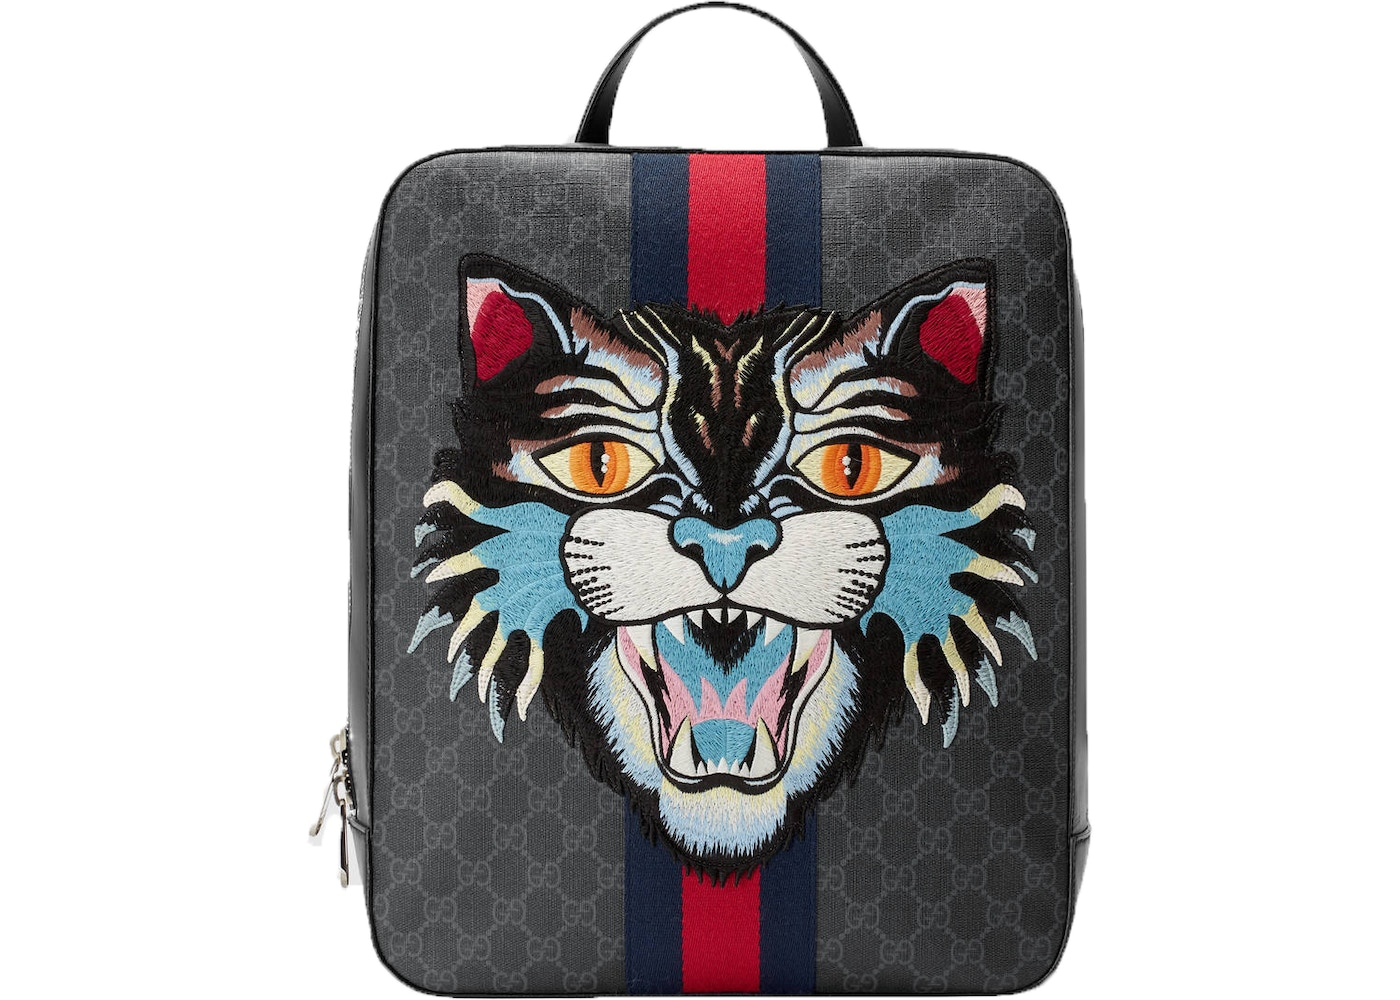 acab5e22e169 Gucci GG Supreme Angry Cat Backpack Monogram GG Embroidered ...